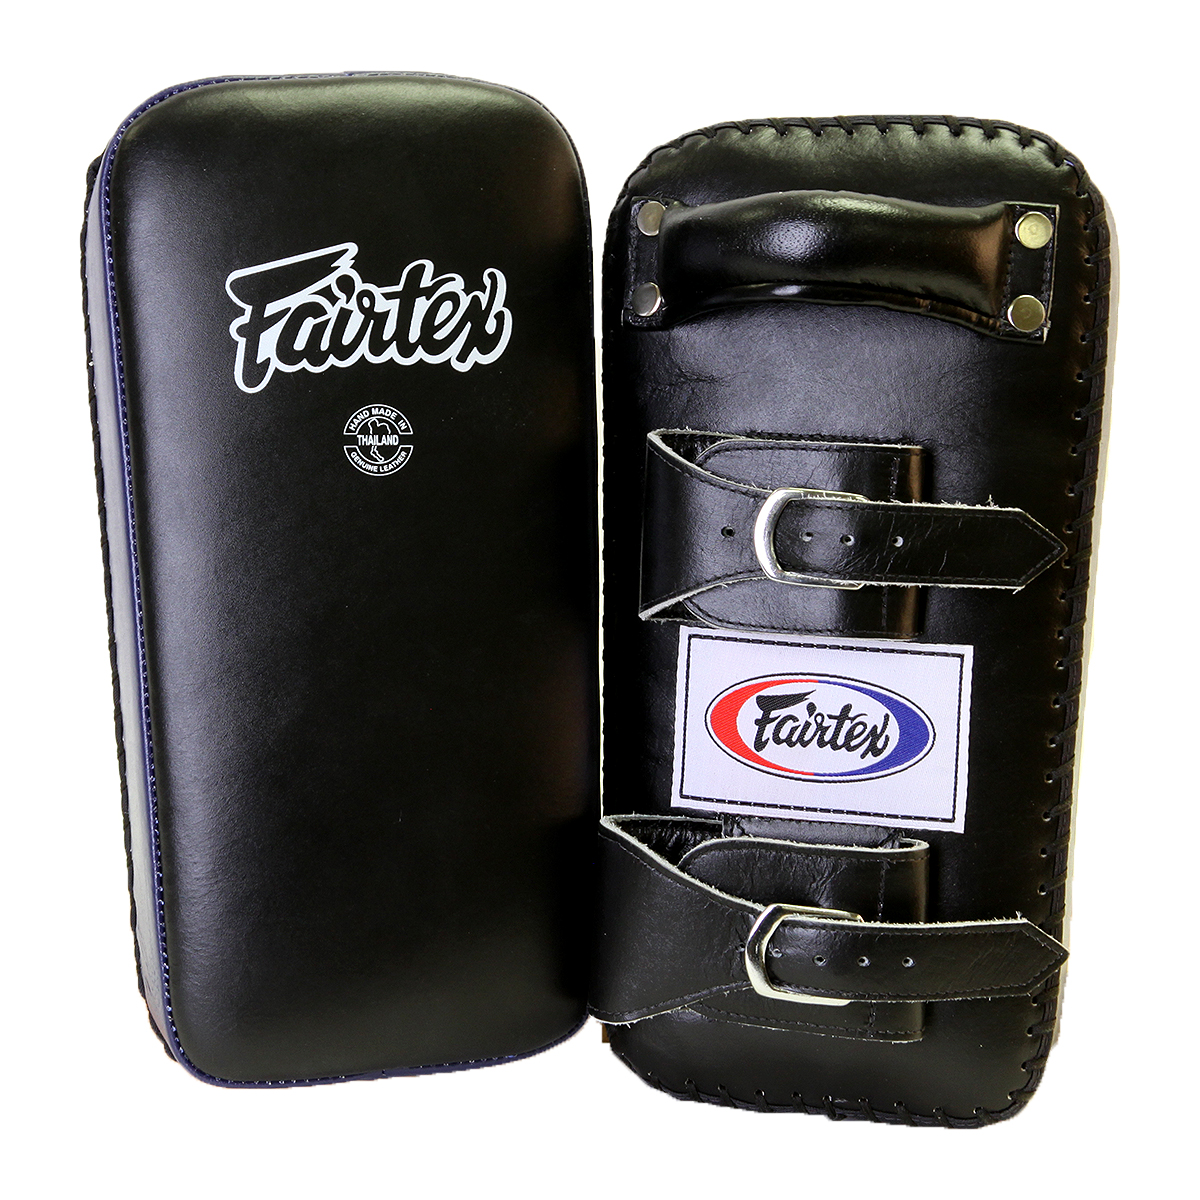 Fairtex Extra Thick Thai Kick Pads with Buckle - Black/Blue